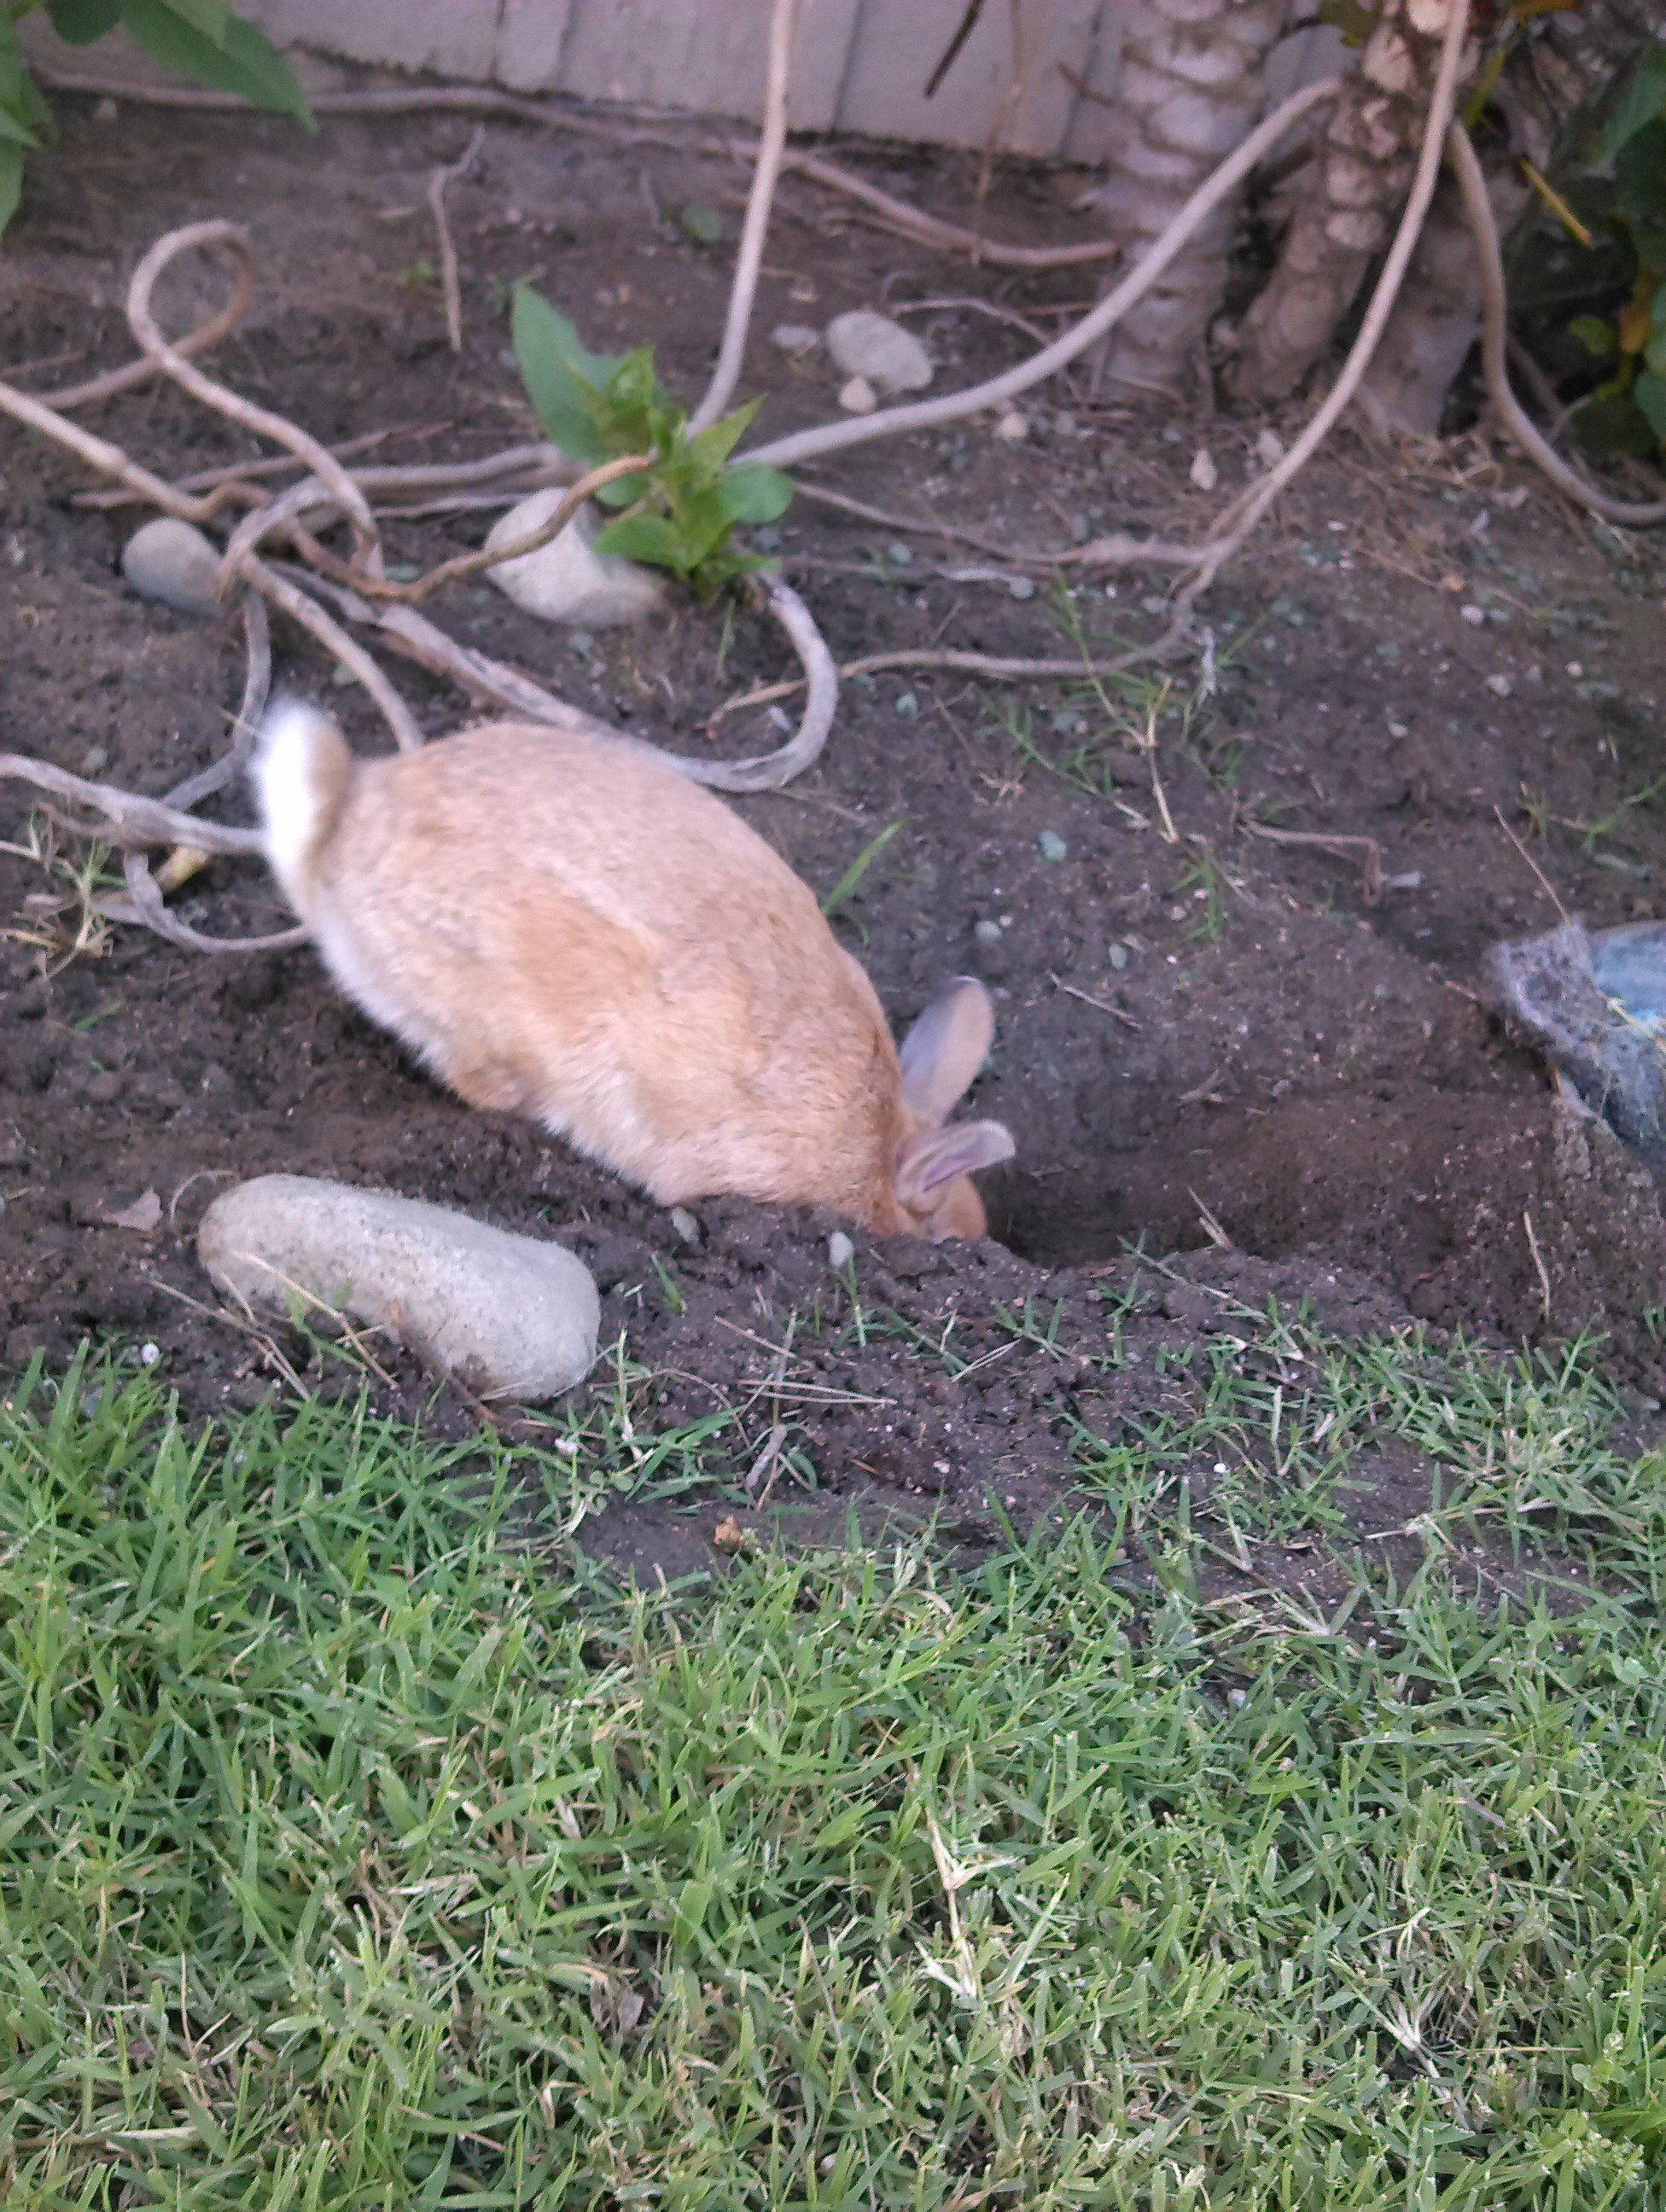 Bunny Is Having a Grand Time Digging in the Garden